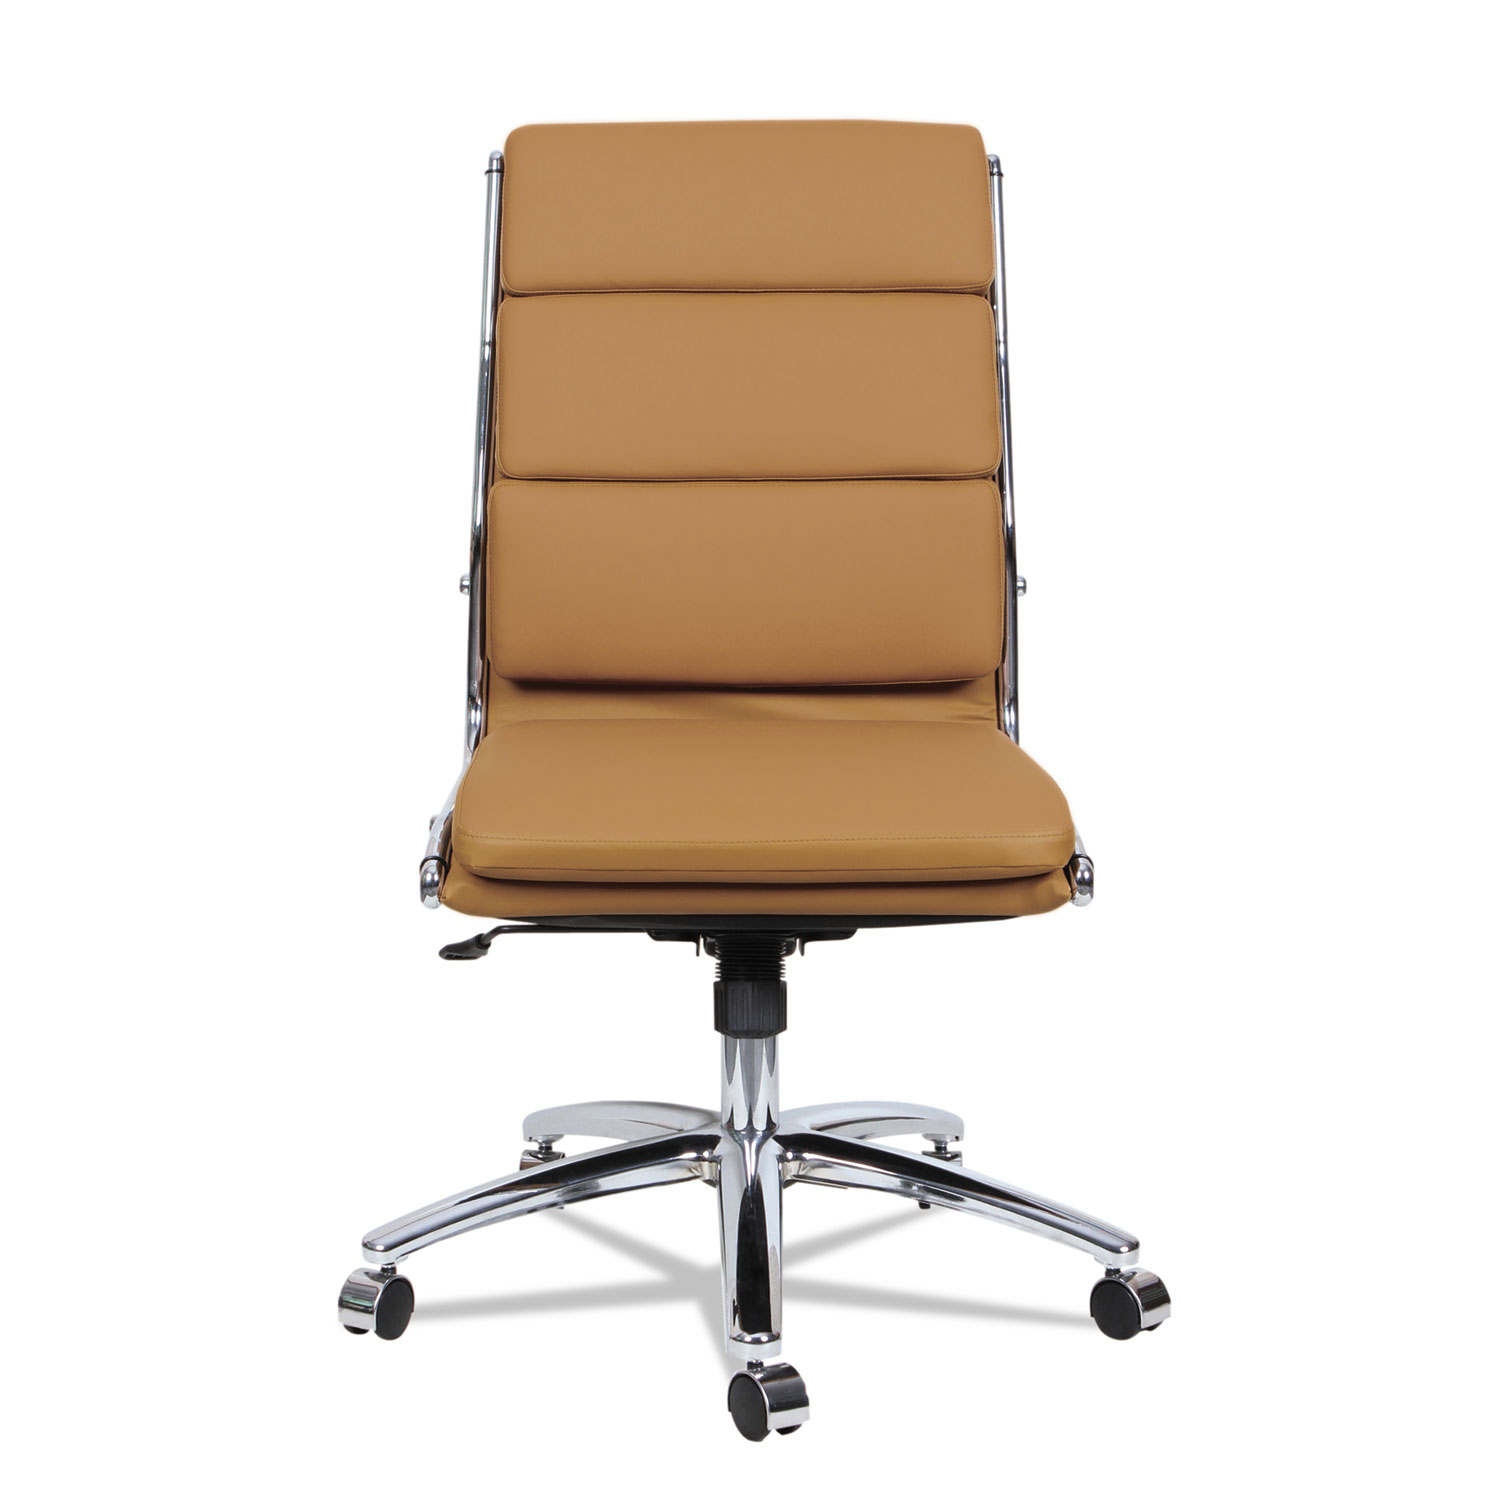 Alera Chair Alera Neratoli Mid Back Slim Profile Chair By Alera